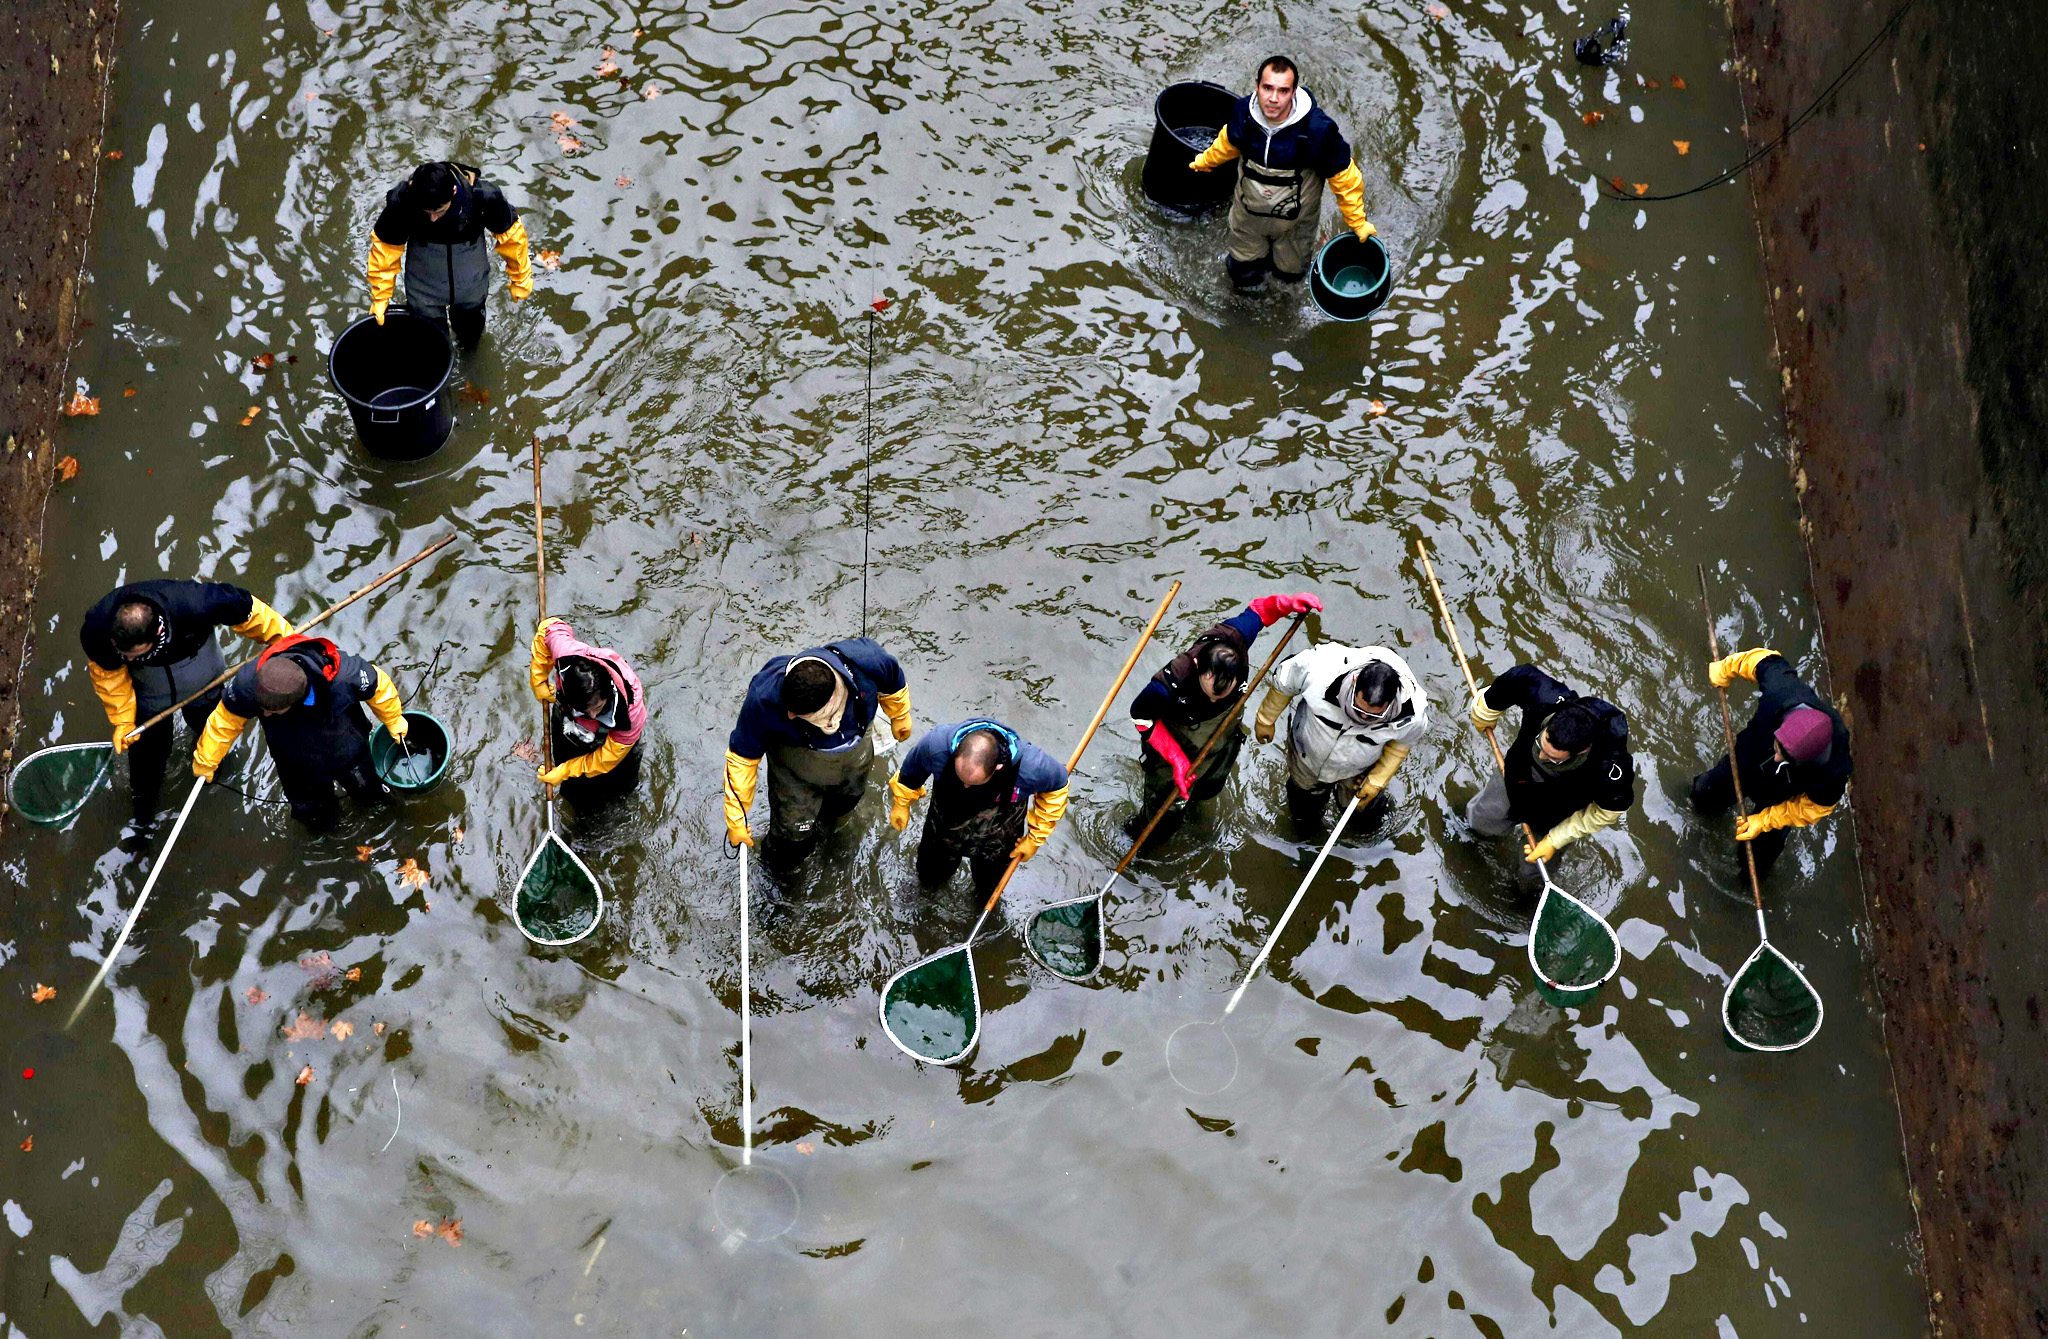 Workers remove fish from inside a lock on the canal Saint Martin in Paris on January 5, 2016 before a drainage and cleaning operation